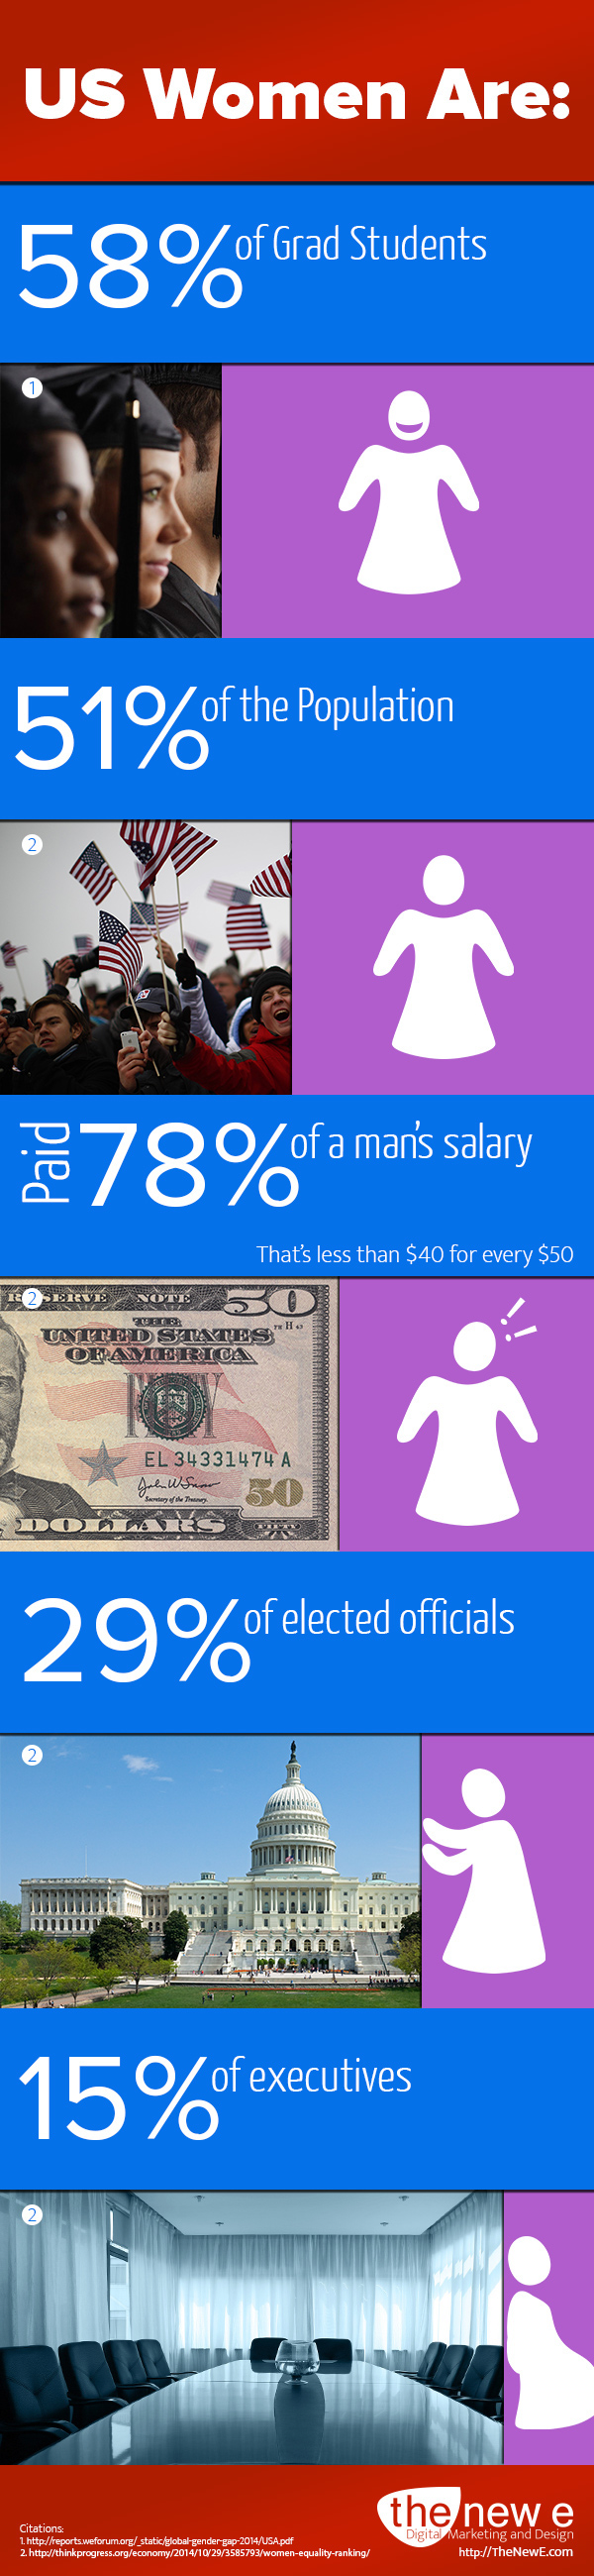 us women infographic color